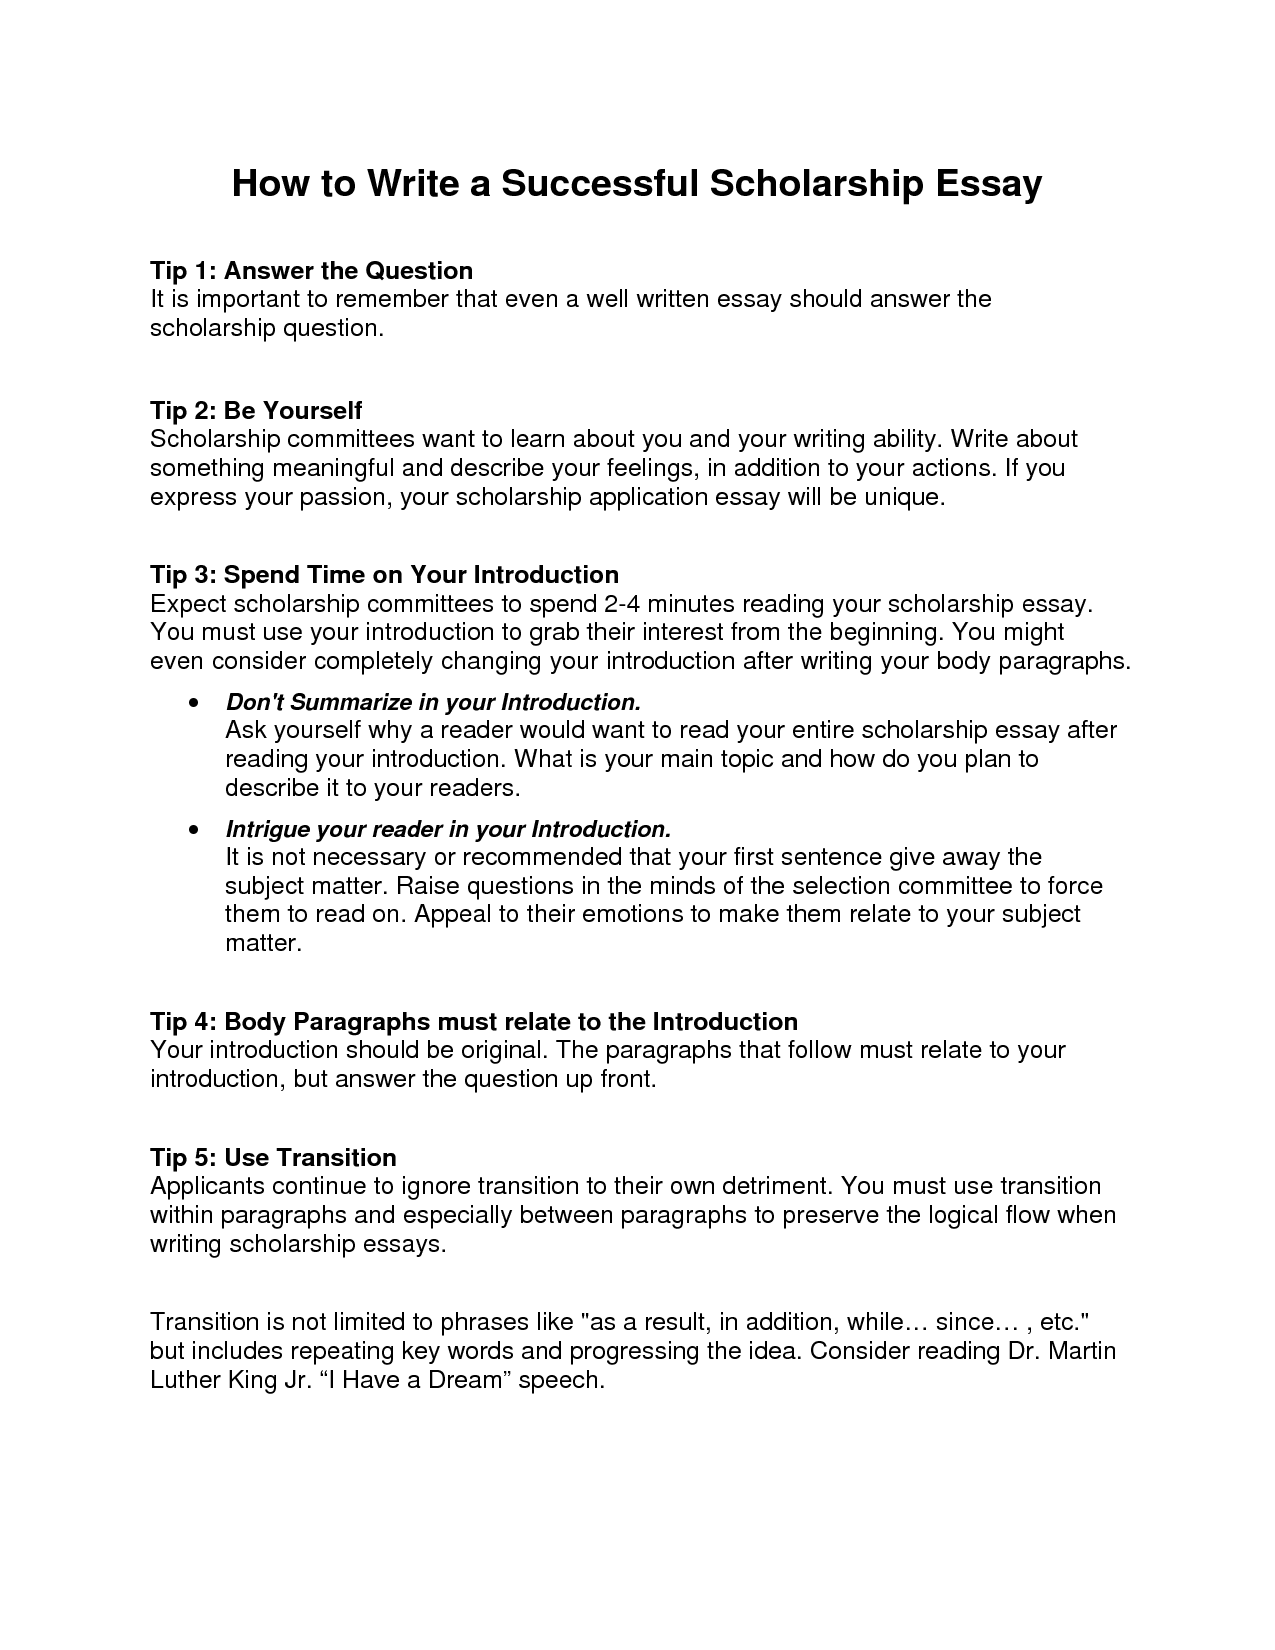 How to write an essay in english language